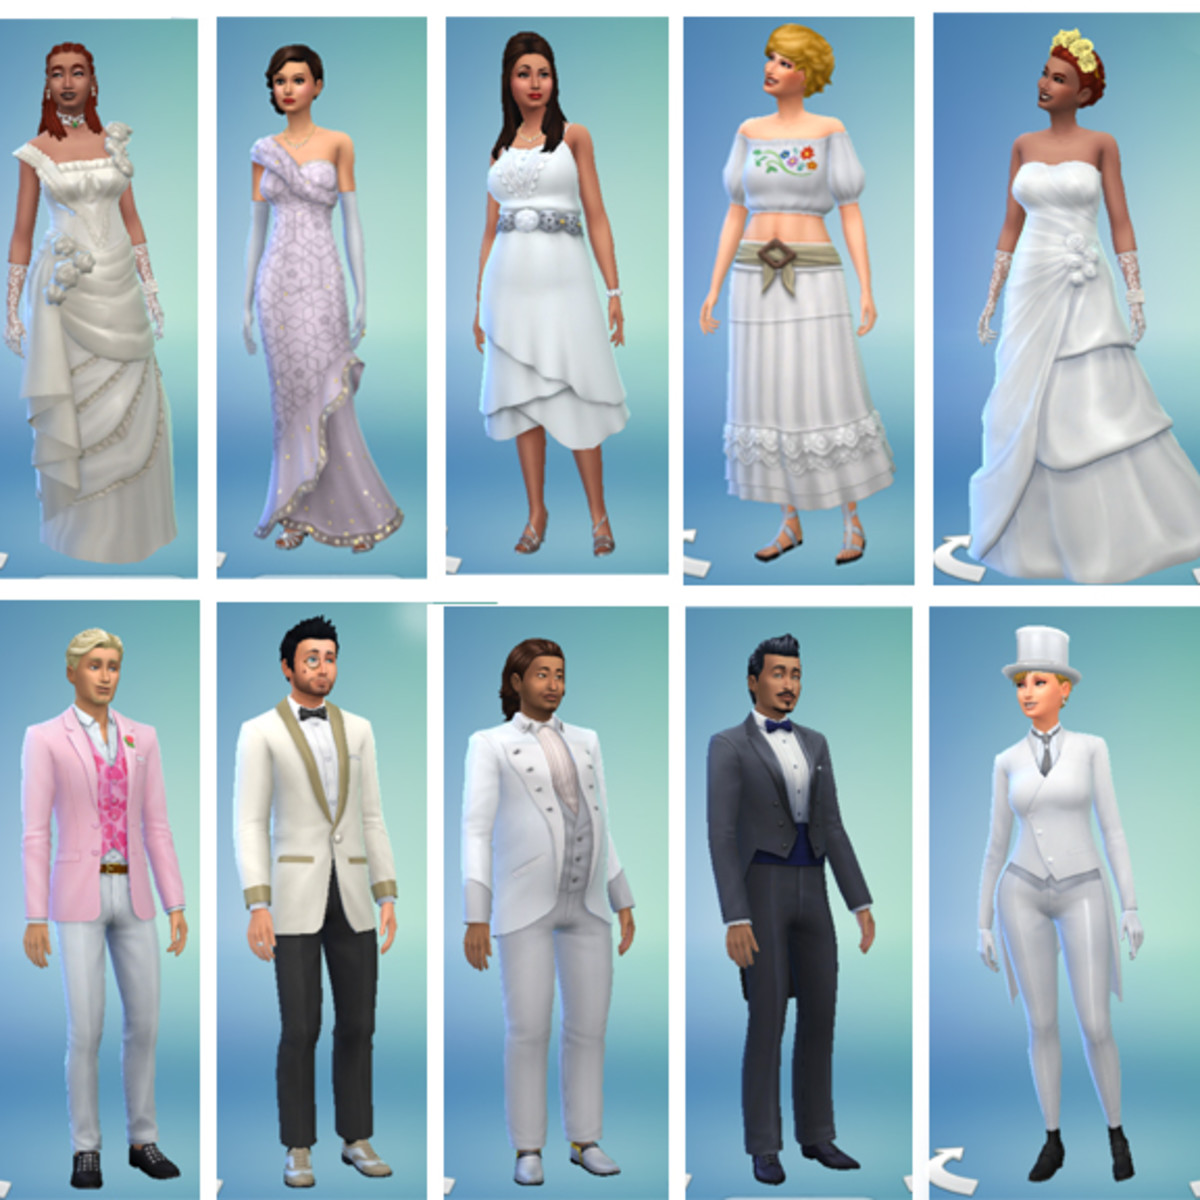 From traditional to casual, there are many different options for dressing up your SIms for their wedding. This doesn't even take into account all the custom content fans of the game make available online.